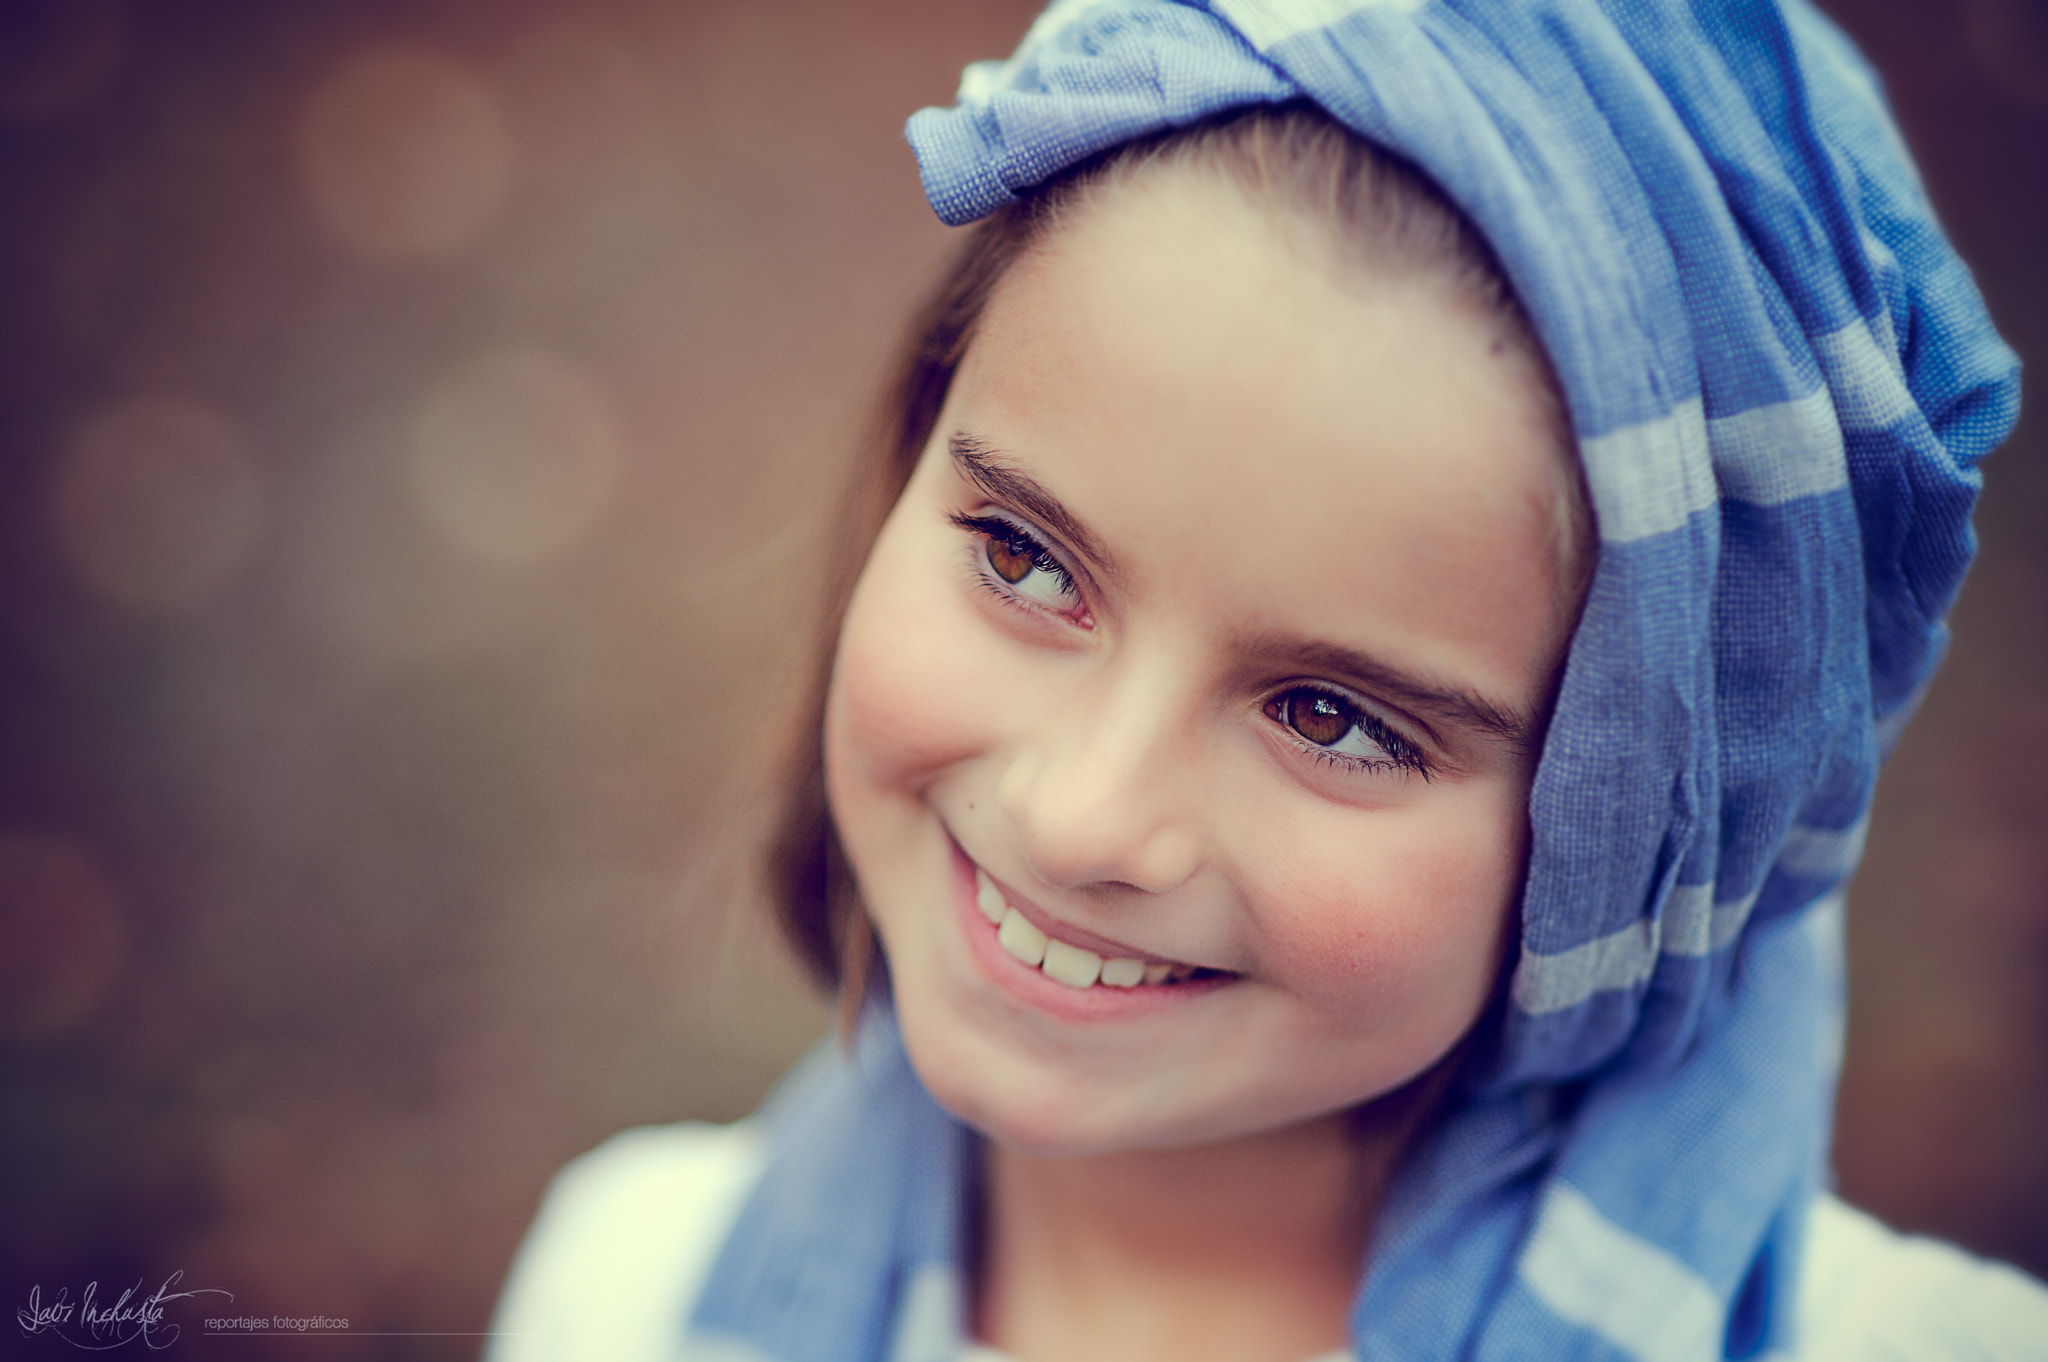 Photograph Smile by Javi Inchusta on 500px